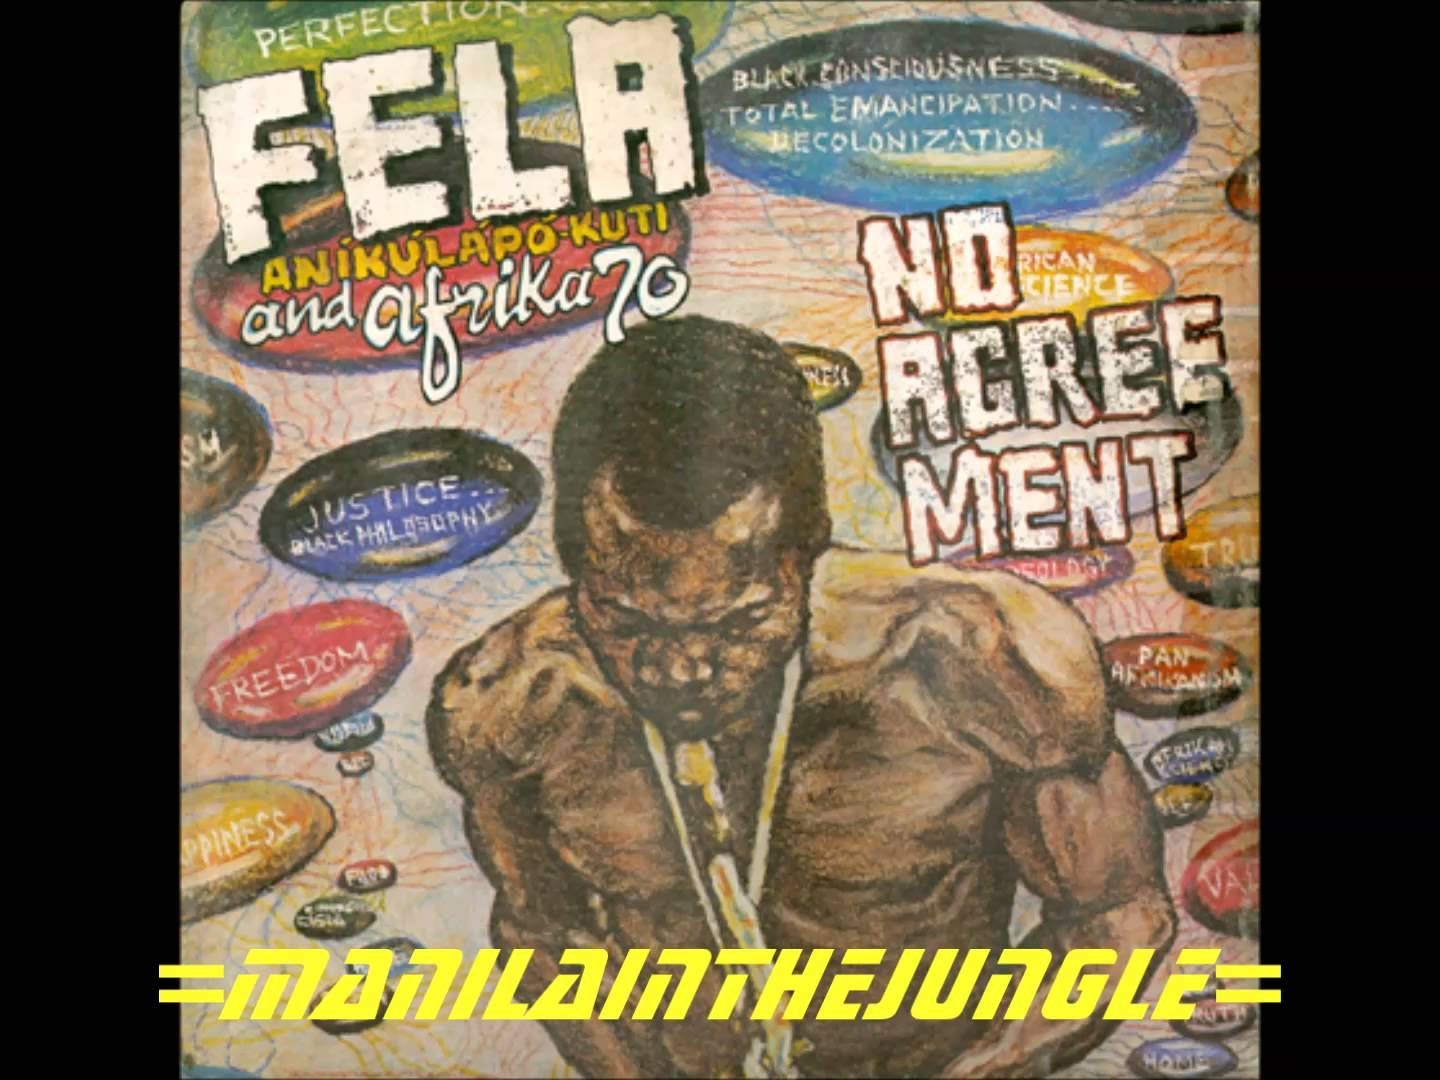 Download mp3 full flac album vinyl rip Fela Anikulapo Kuti* With Africa 70 - No Agreement (Cassette)